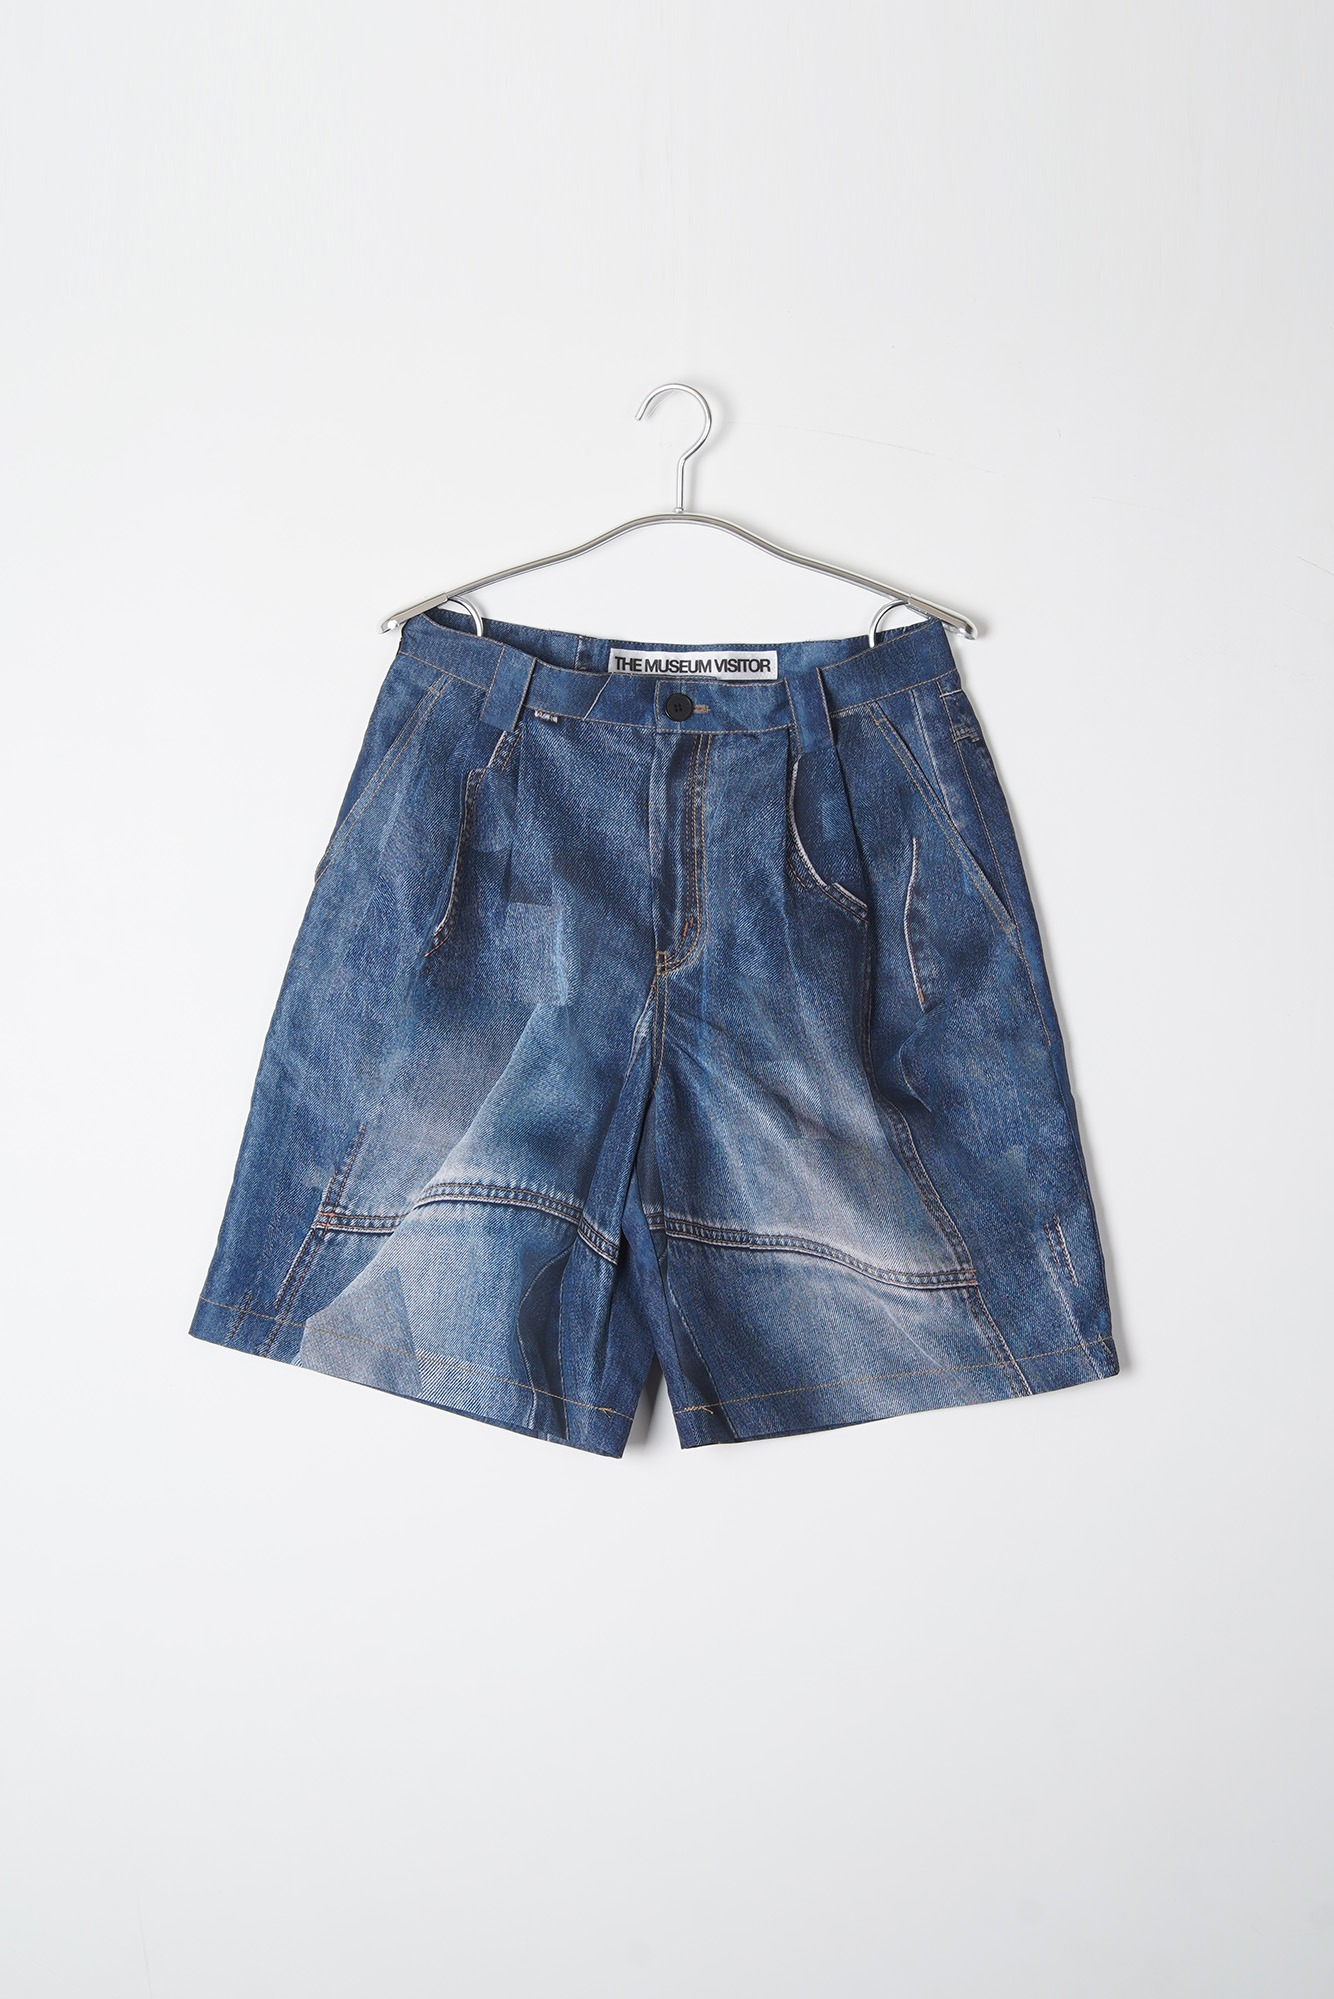 THE MUSEUM VISITOR Denim Printed Denim Shorts